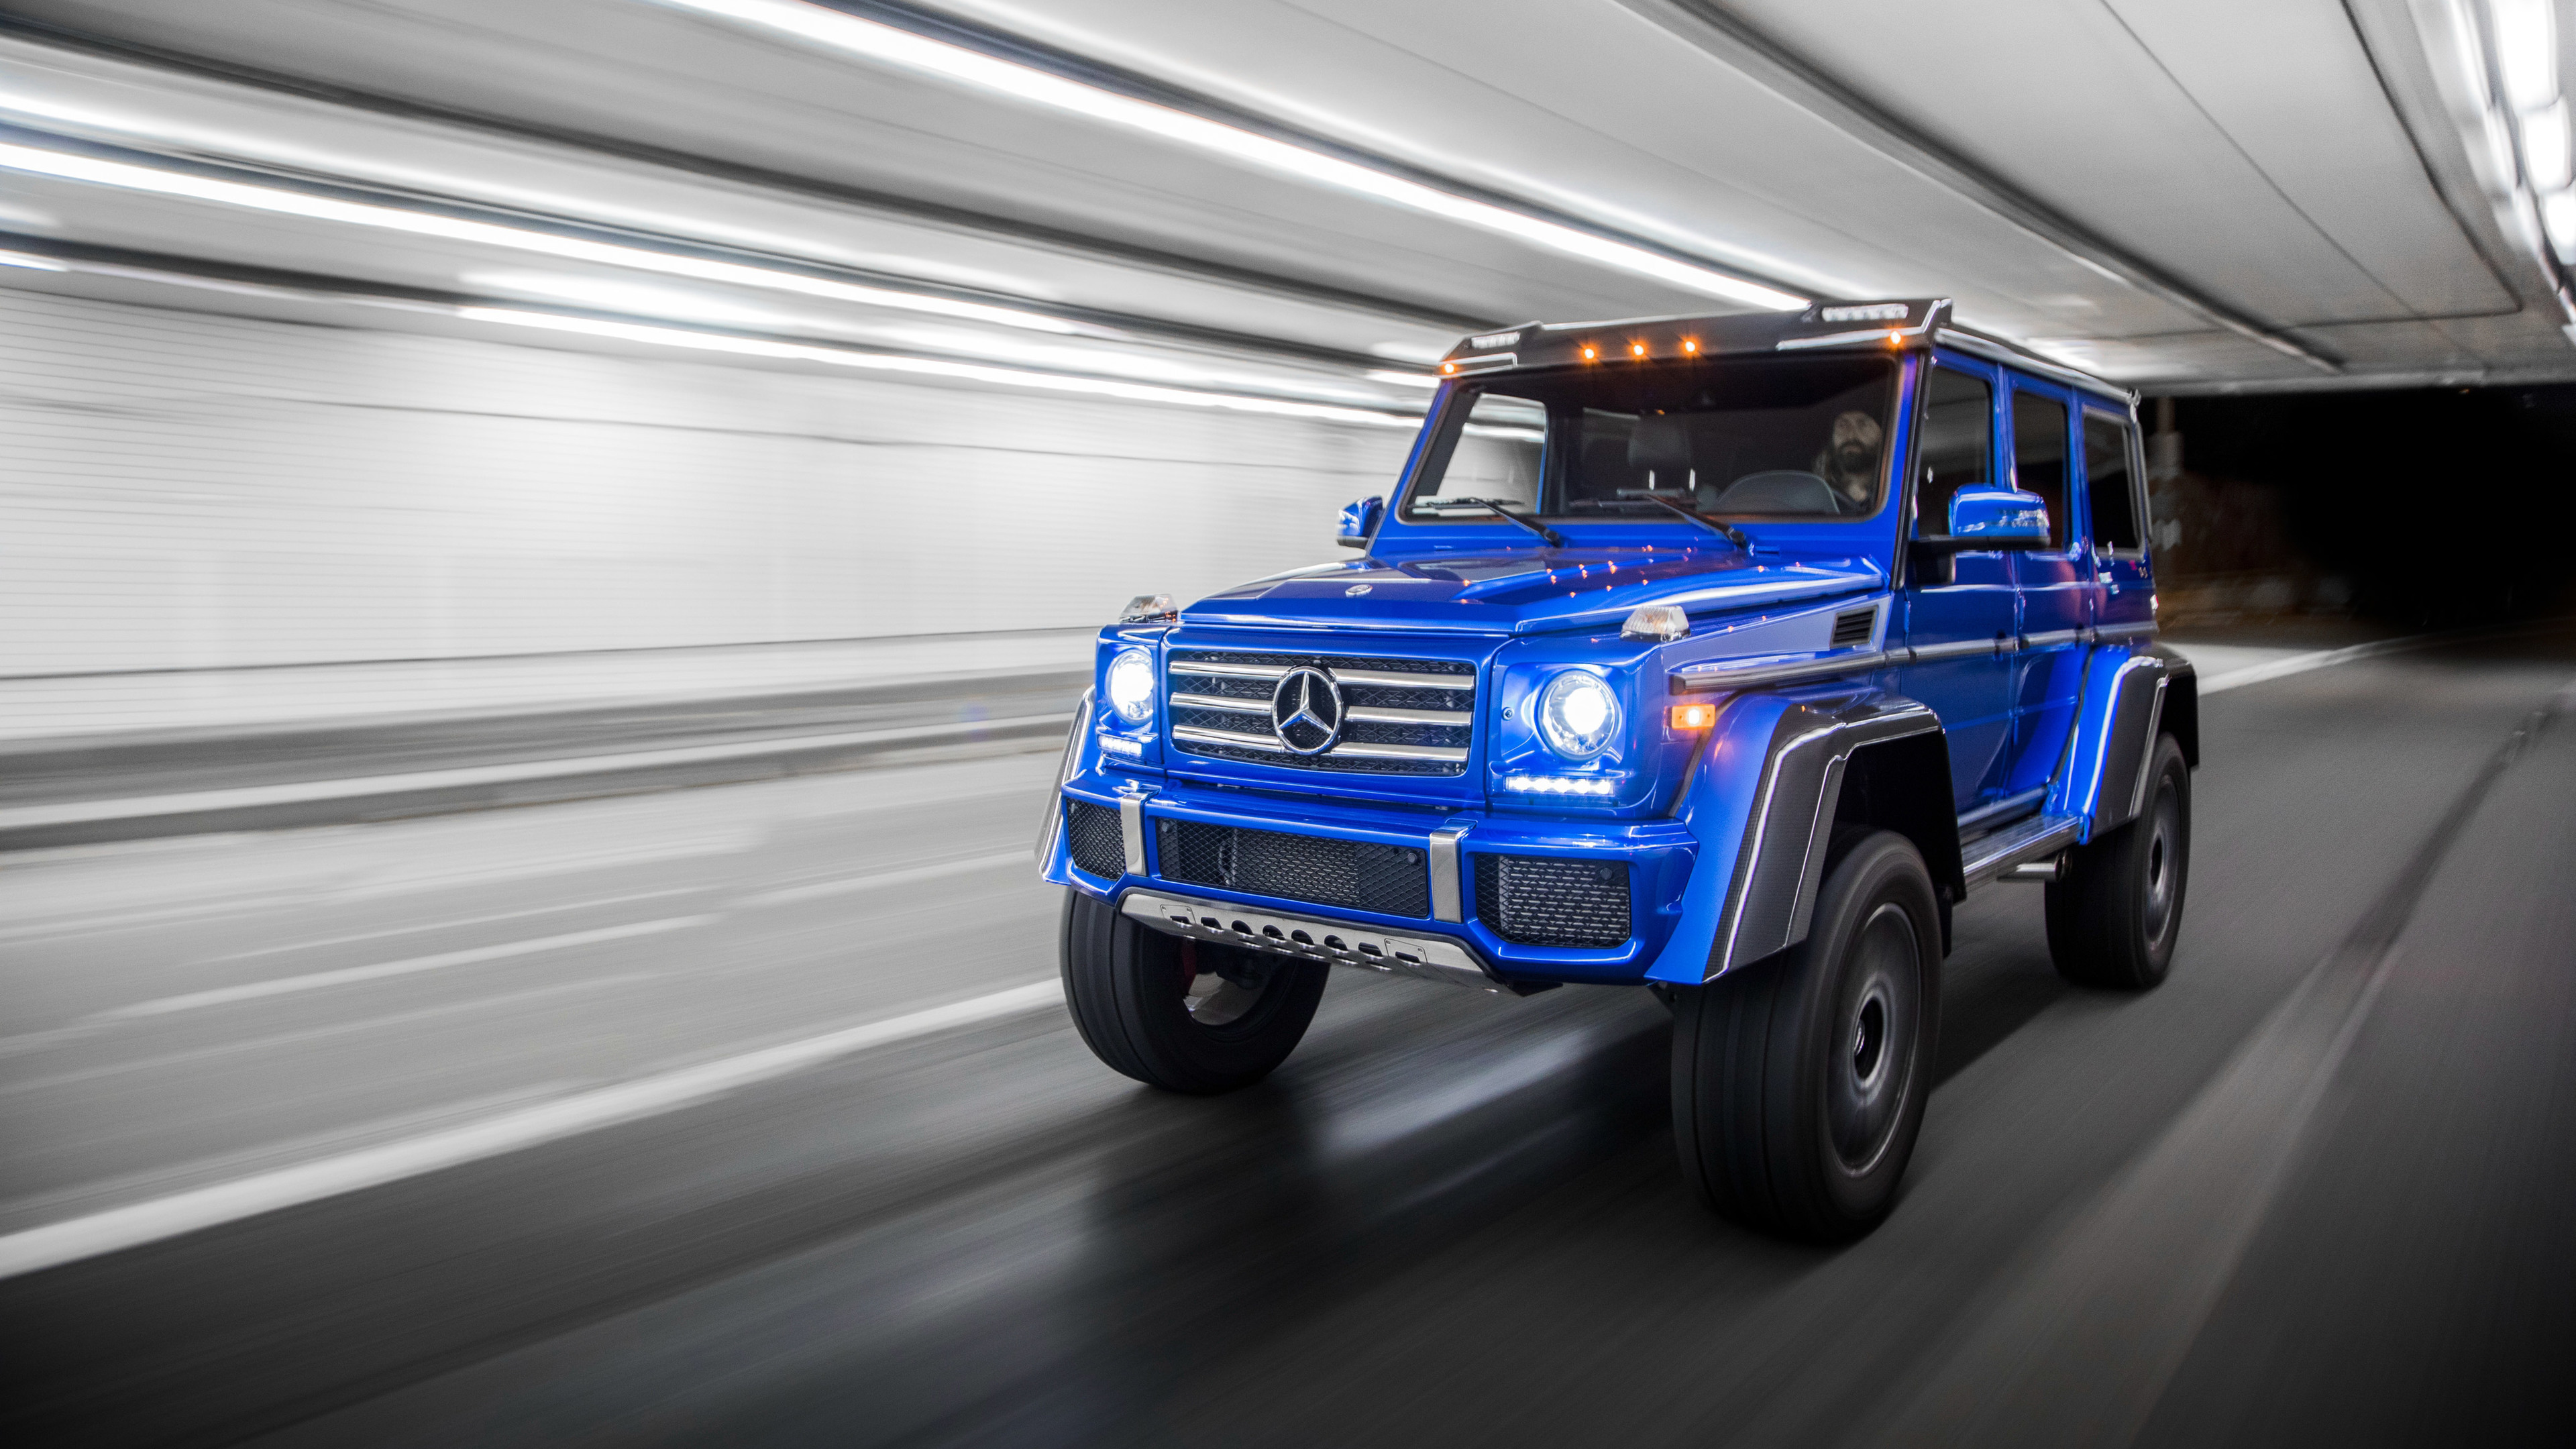 2017 mercedes benz g 550 front 1539107557 - 2017 Mercedes Benz G 550 Front - mercedes benz wallpapers, mercedes benz g class wallpapers, hd-wallpapers, cars wallpapers, 4k-wallpapers, 2017 cars wallpapers